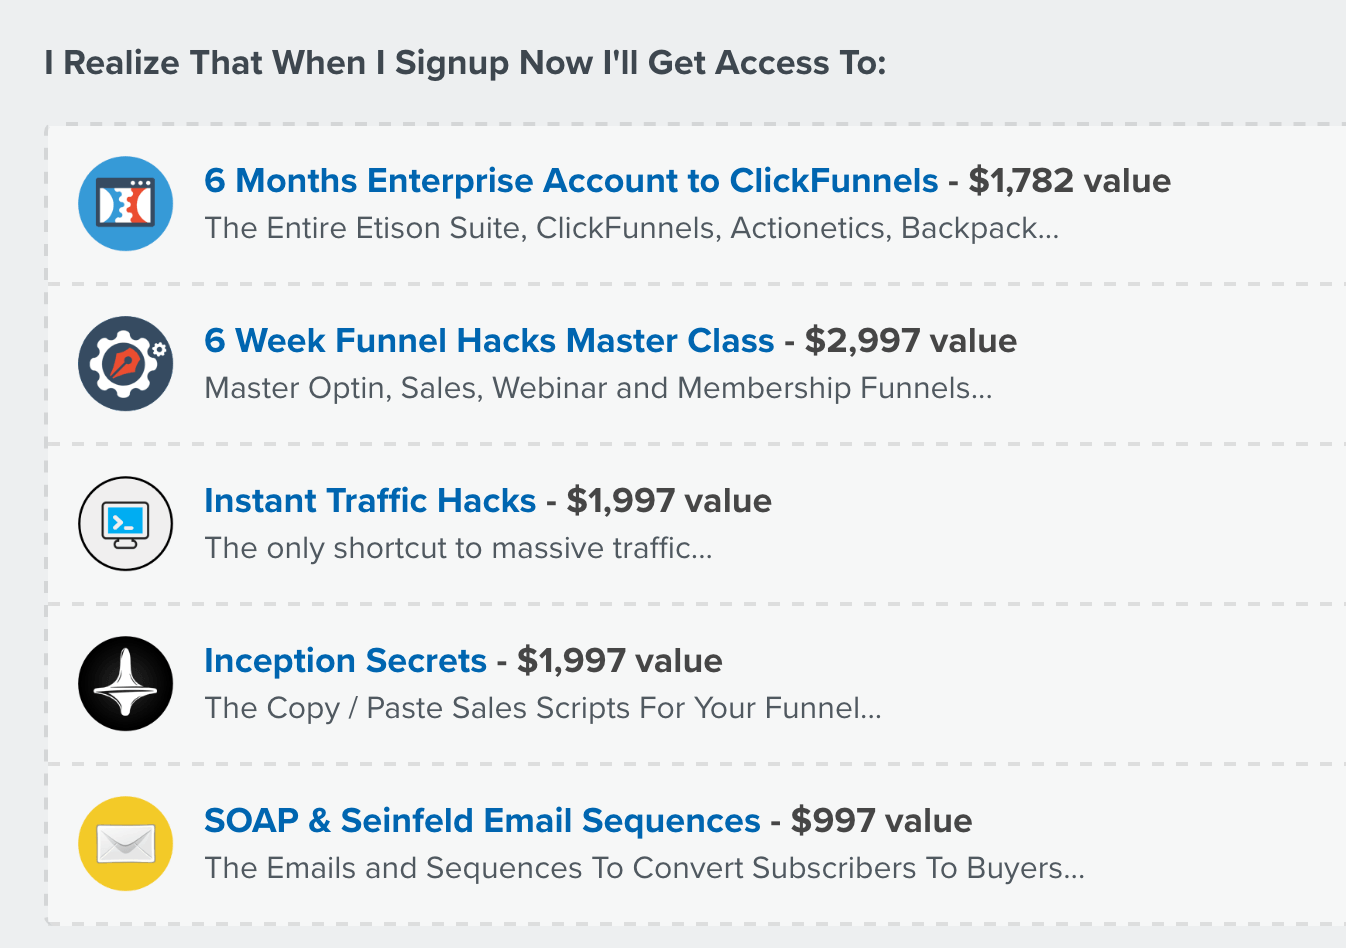 Clickfunnels Save As Template